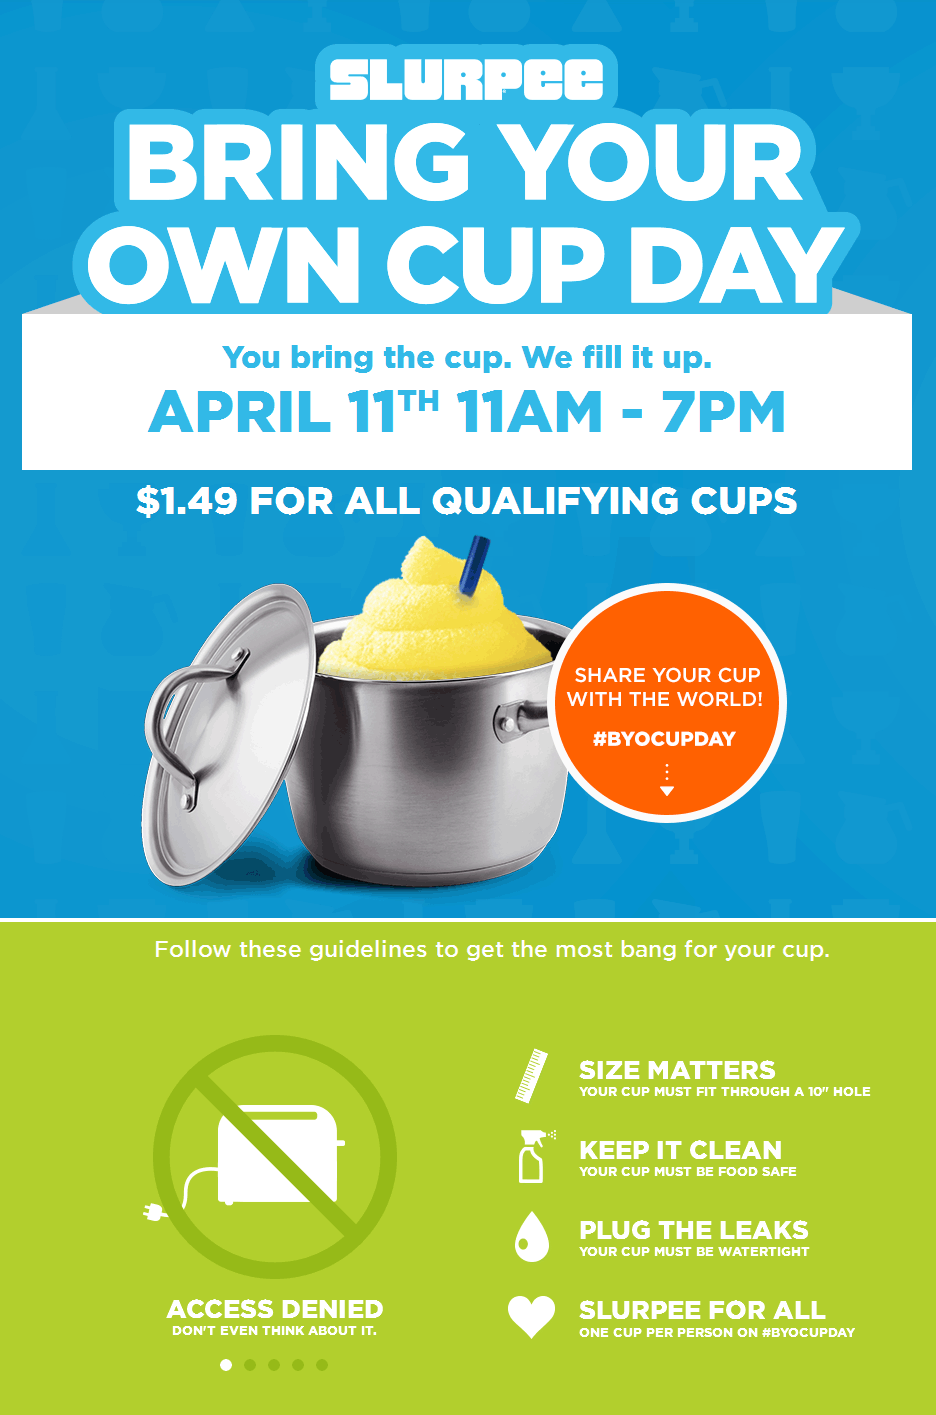 7-Eleven Coupon June 2018 Fill your own cup - any size - with slurpee for $1.49 Saturday at 7-Eleven